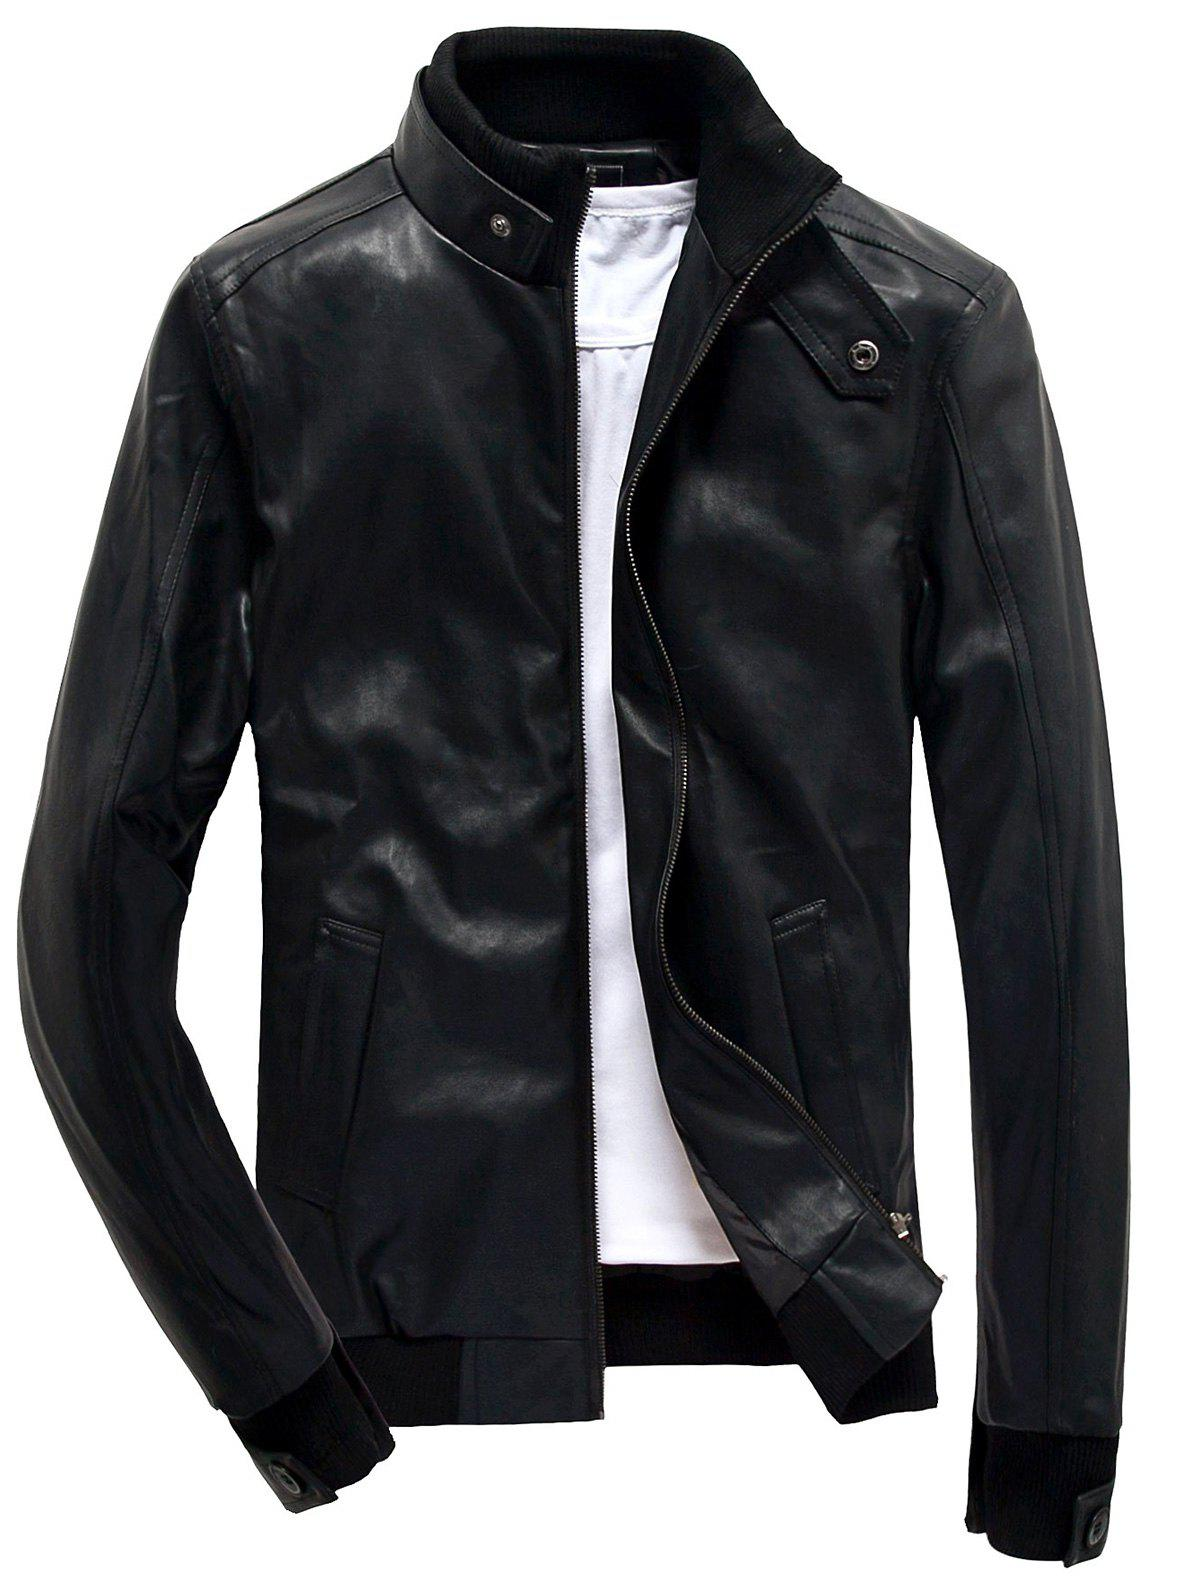 Rib Splicing Design Stand Collar Zip Up PU Leather Jacket 202313912